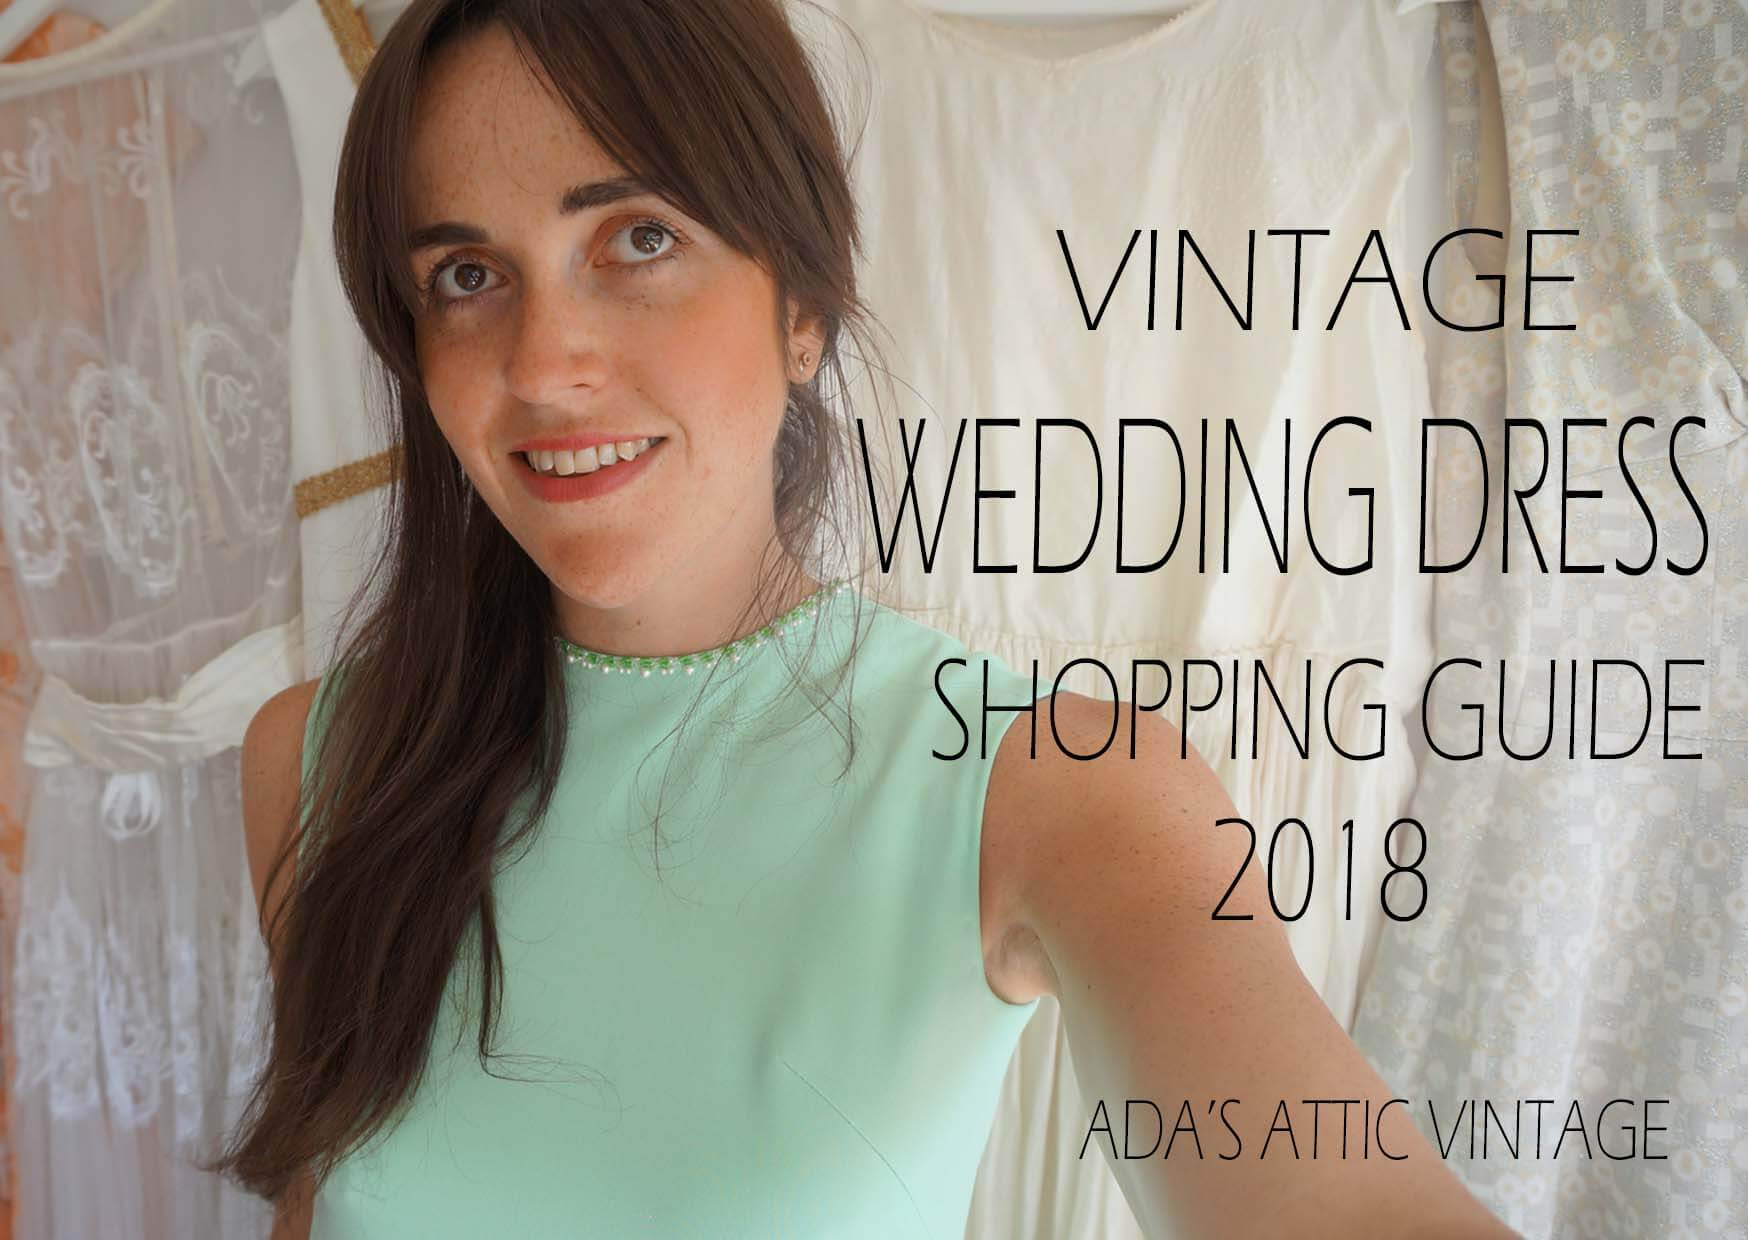 Vintage Wedding Dress Shopping Guide